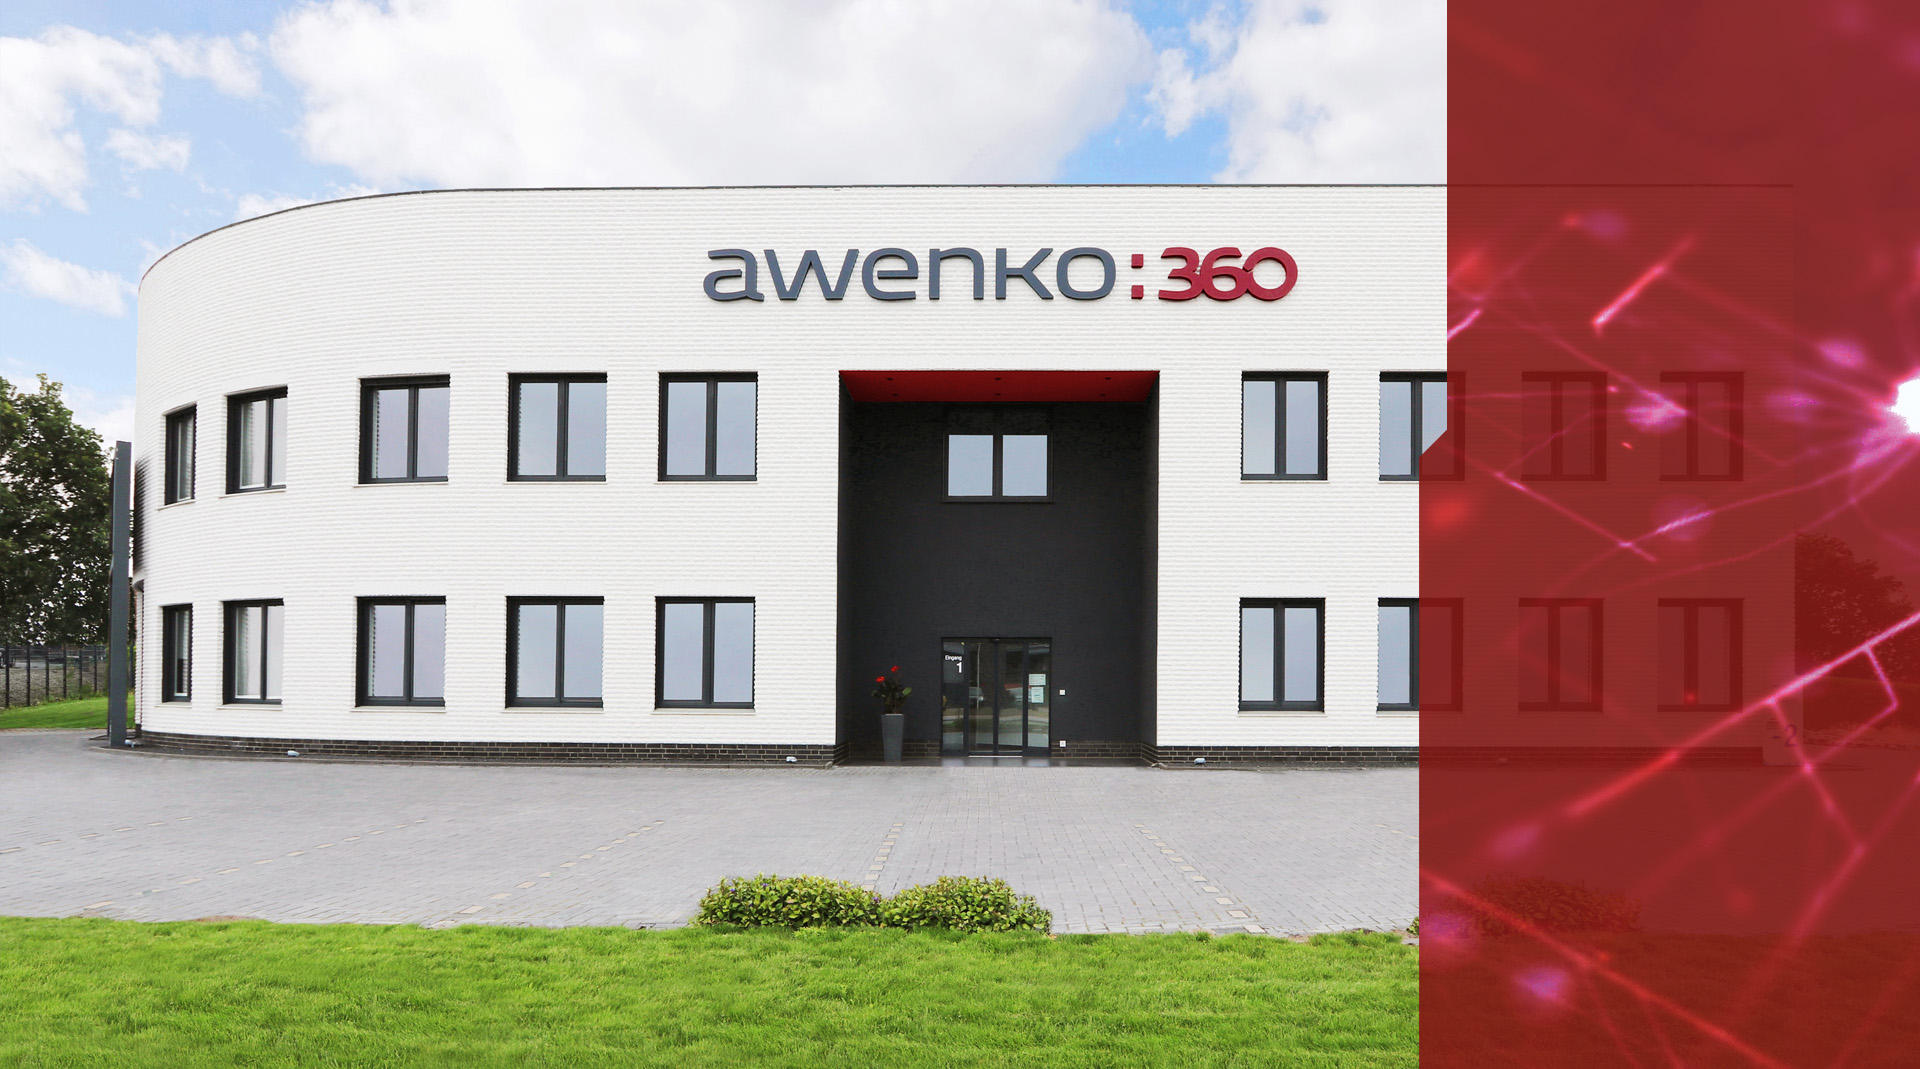 awenko:360 QM Software Firmengebäude